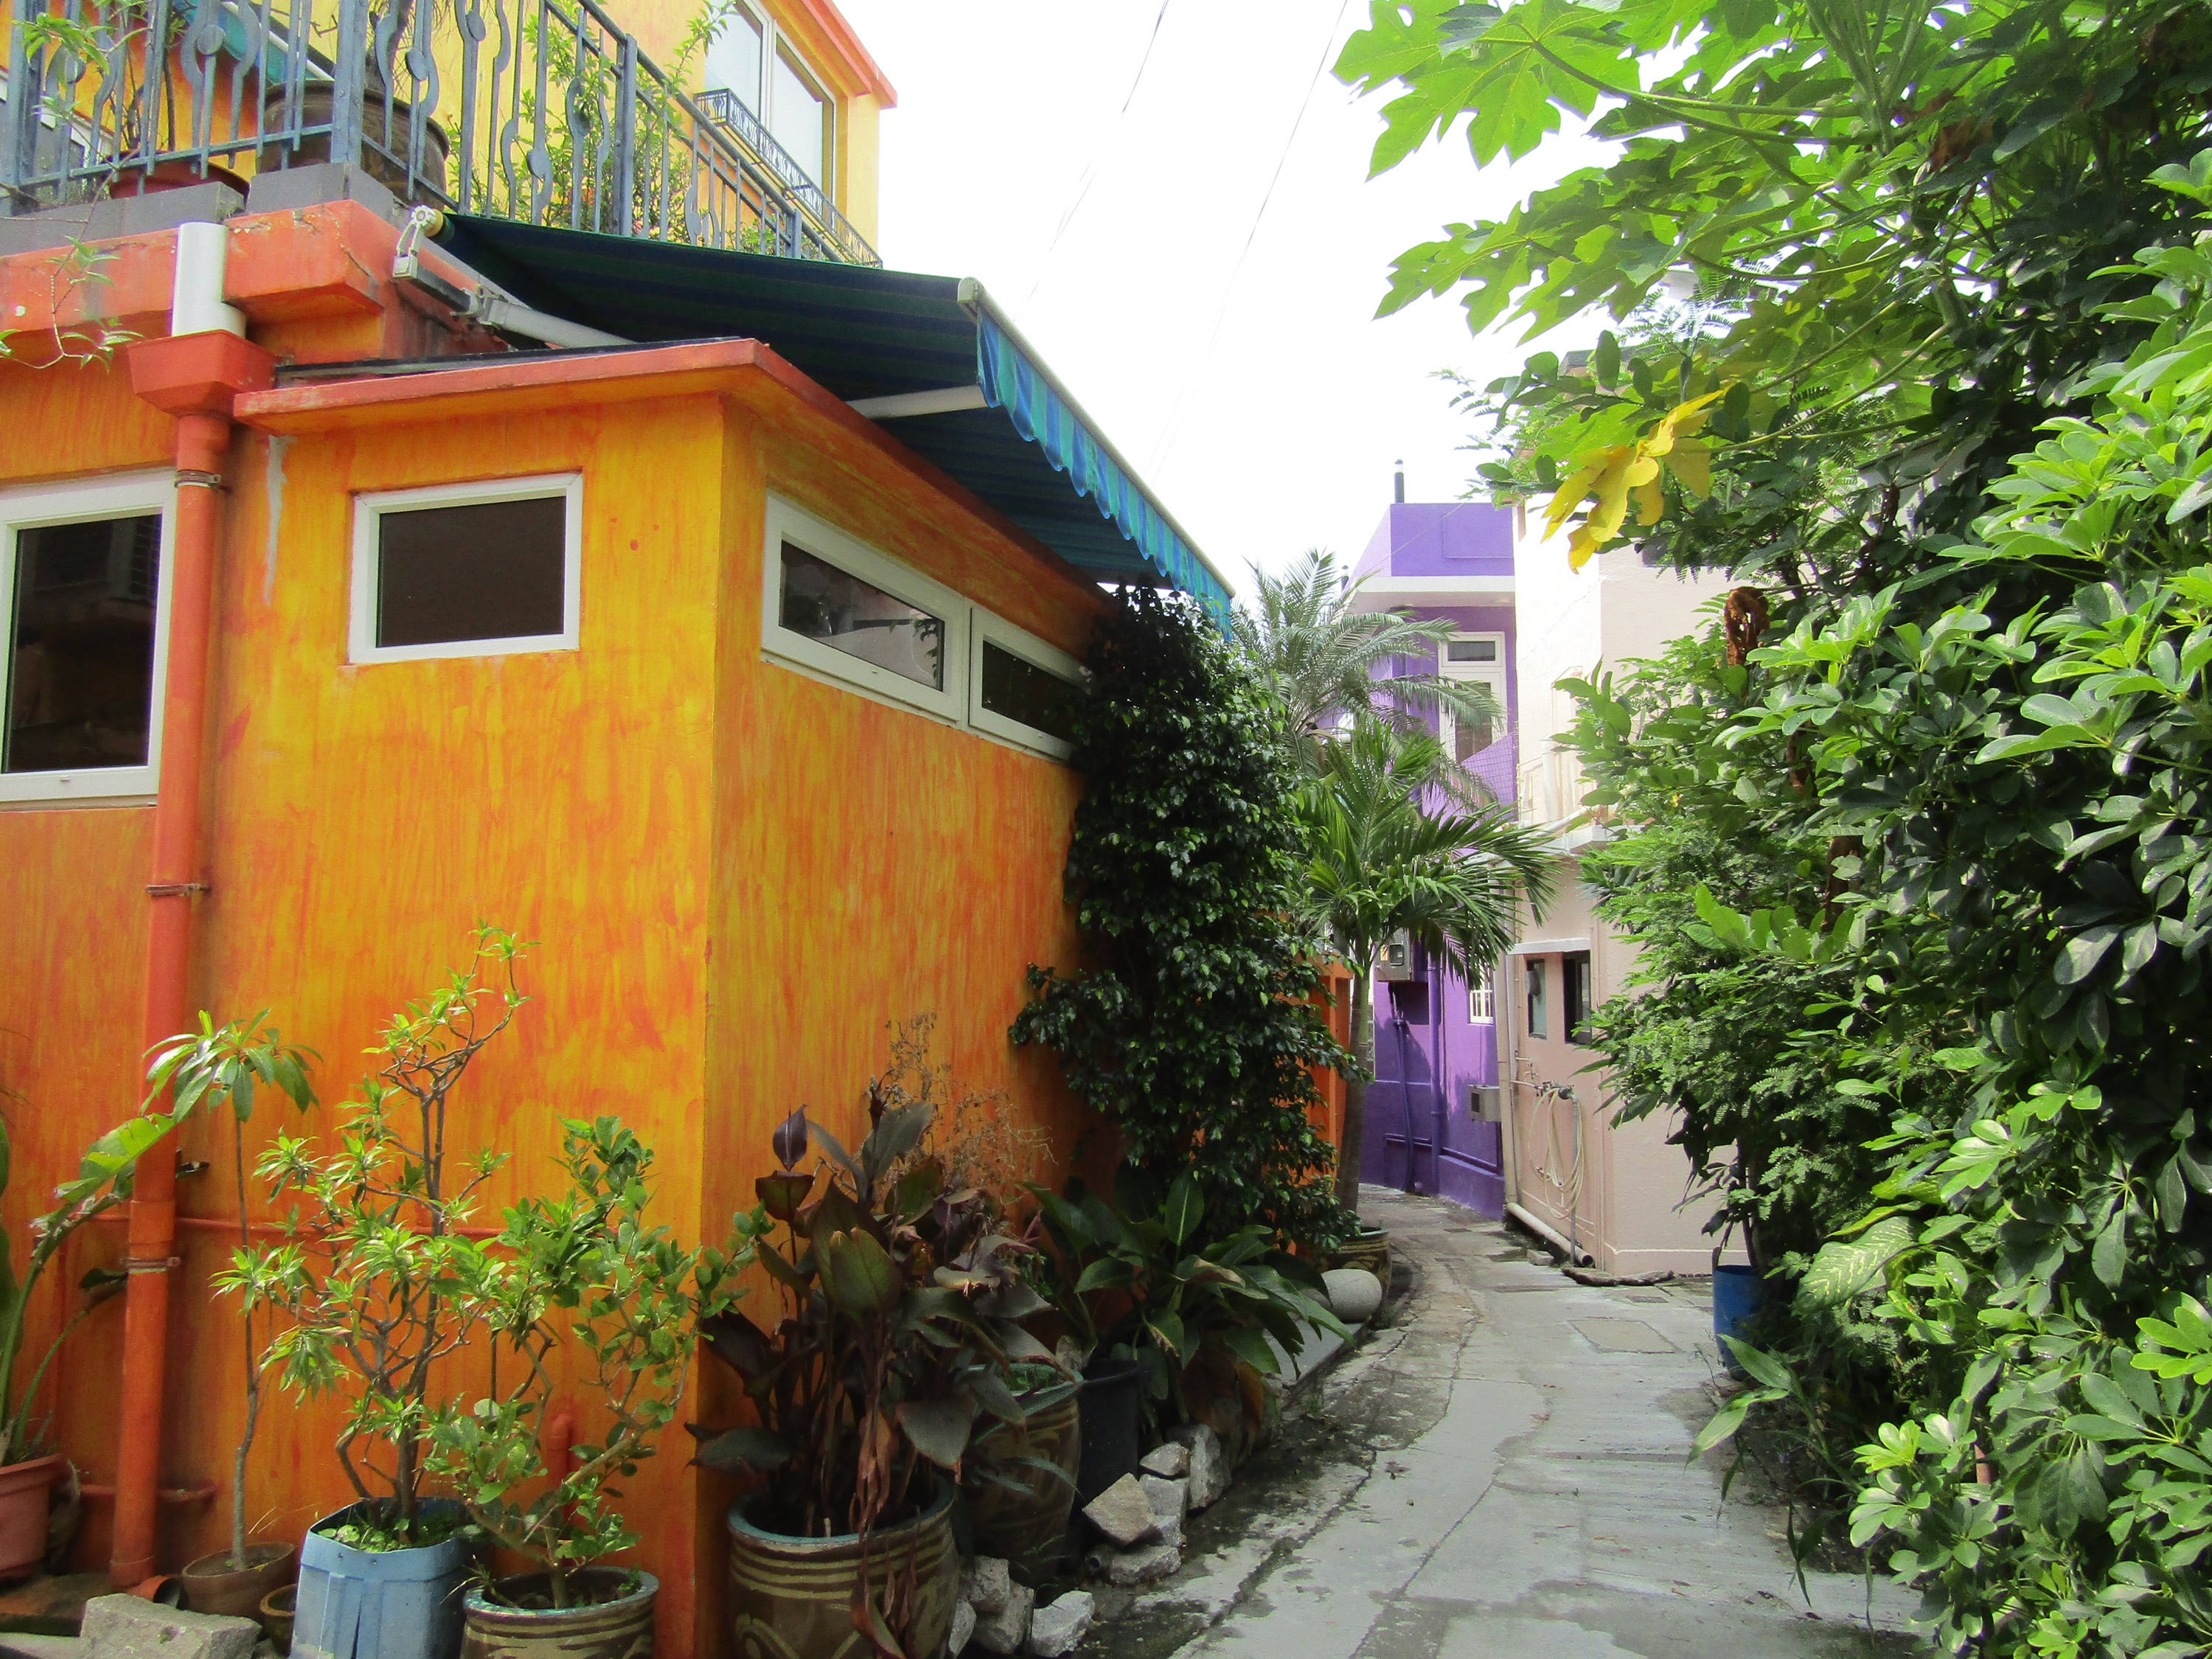 Established more than 200 years ago by local fishing clans, the quiet, colorful streets of Shek O Village feel a million miles from the city. The vibe was much like the coastal villages of Central America.